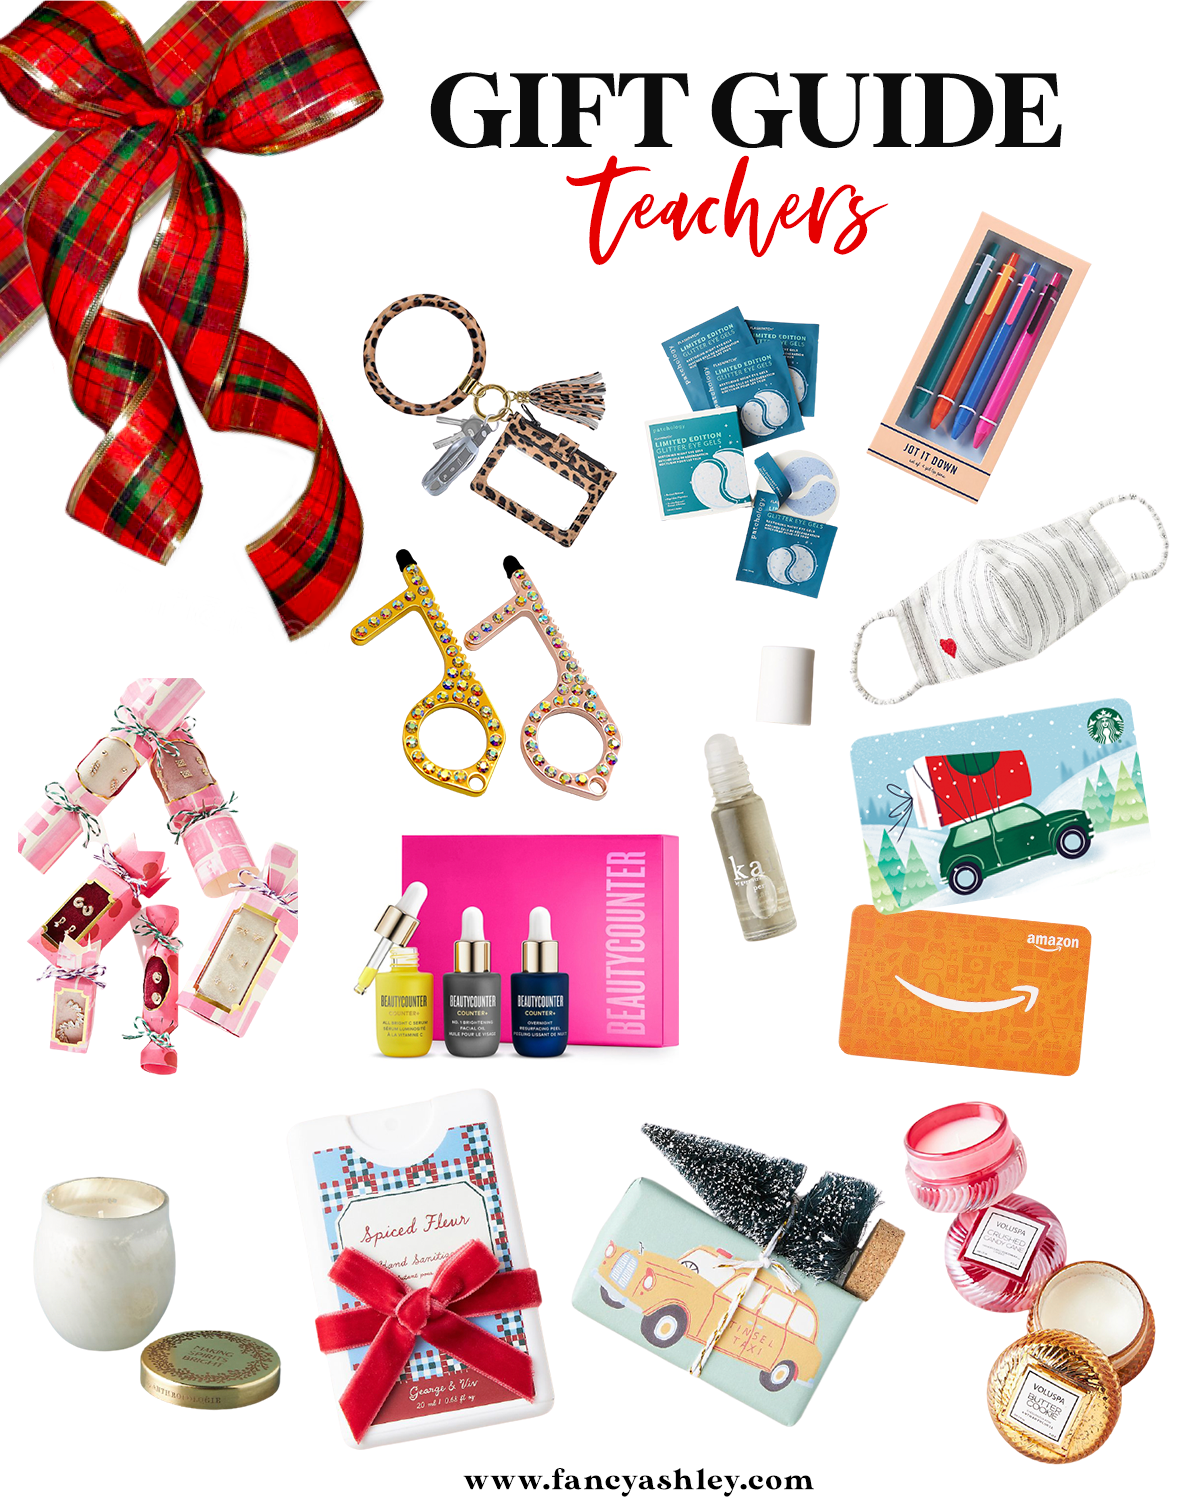 Teacher Gift Ideas by popular Houston life and style blog, Fancy Ashley: colage image of a candle, Amazon gift card, Starbucks gift card, face mask, key ring, pens, silicone eye patches, hand sanitizer trio, cracker box earrings, no touch key ring, and mini beauty counter set.